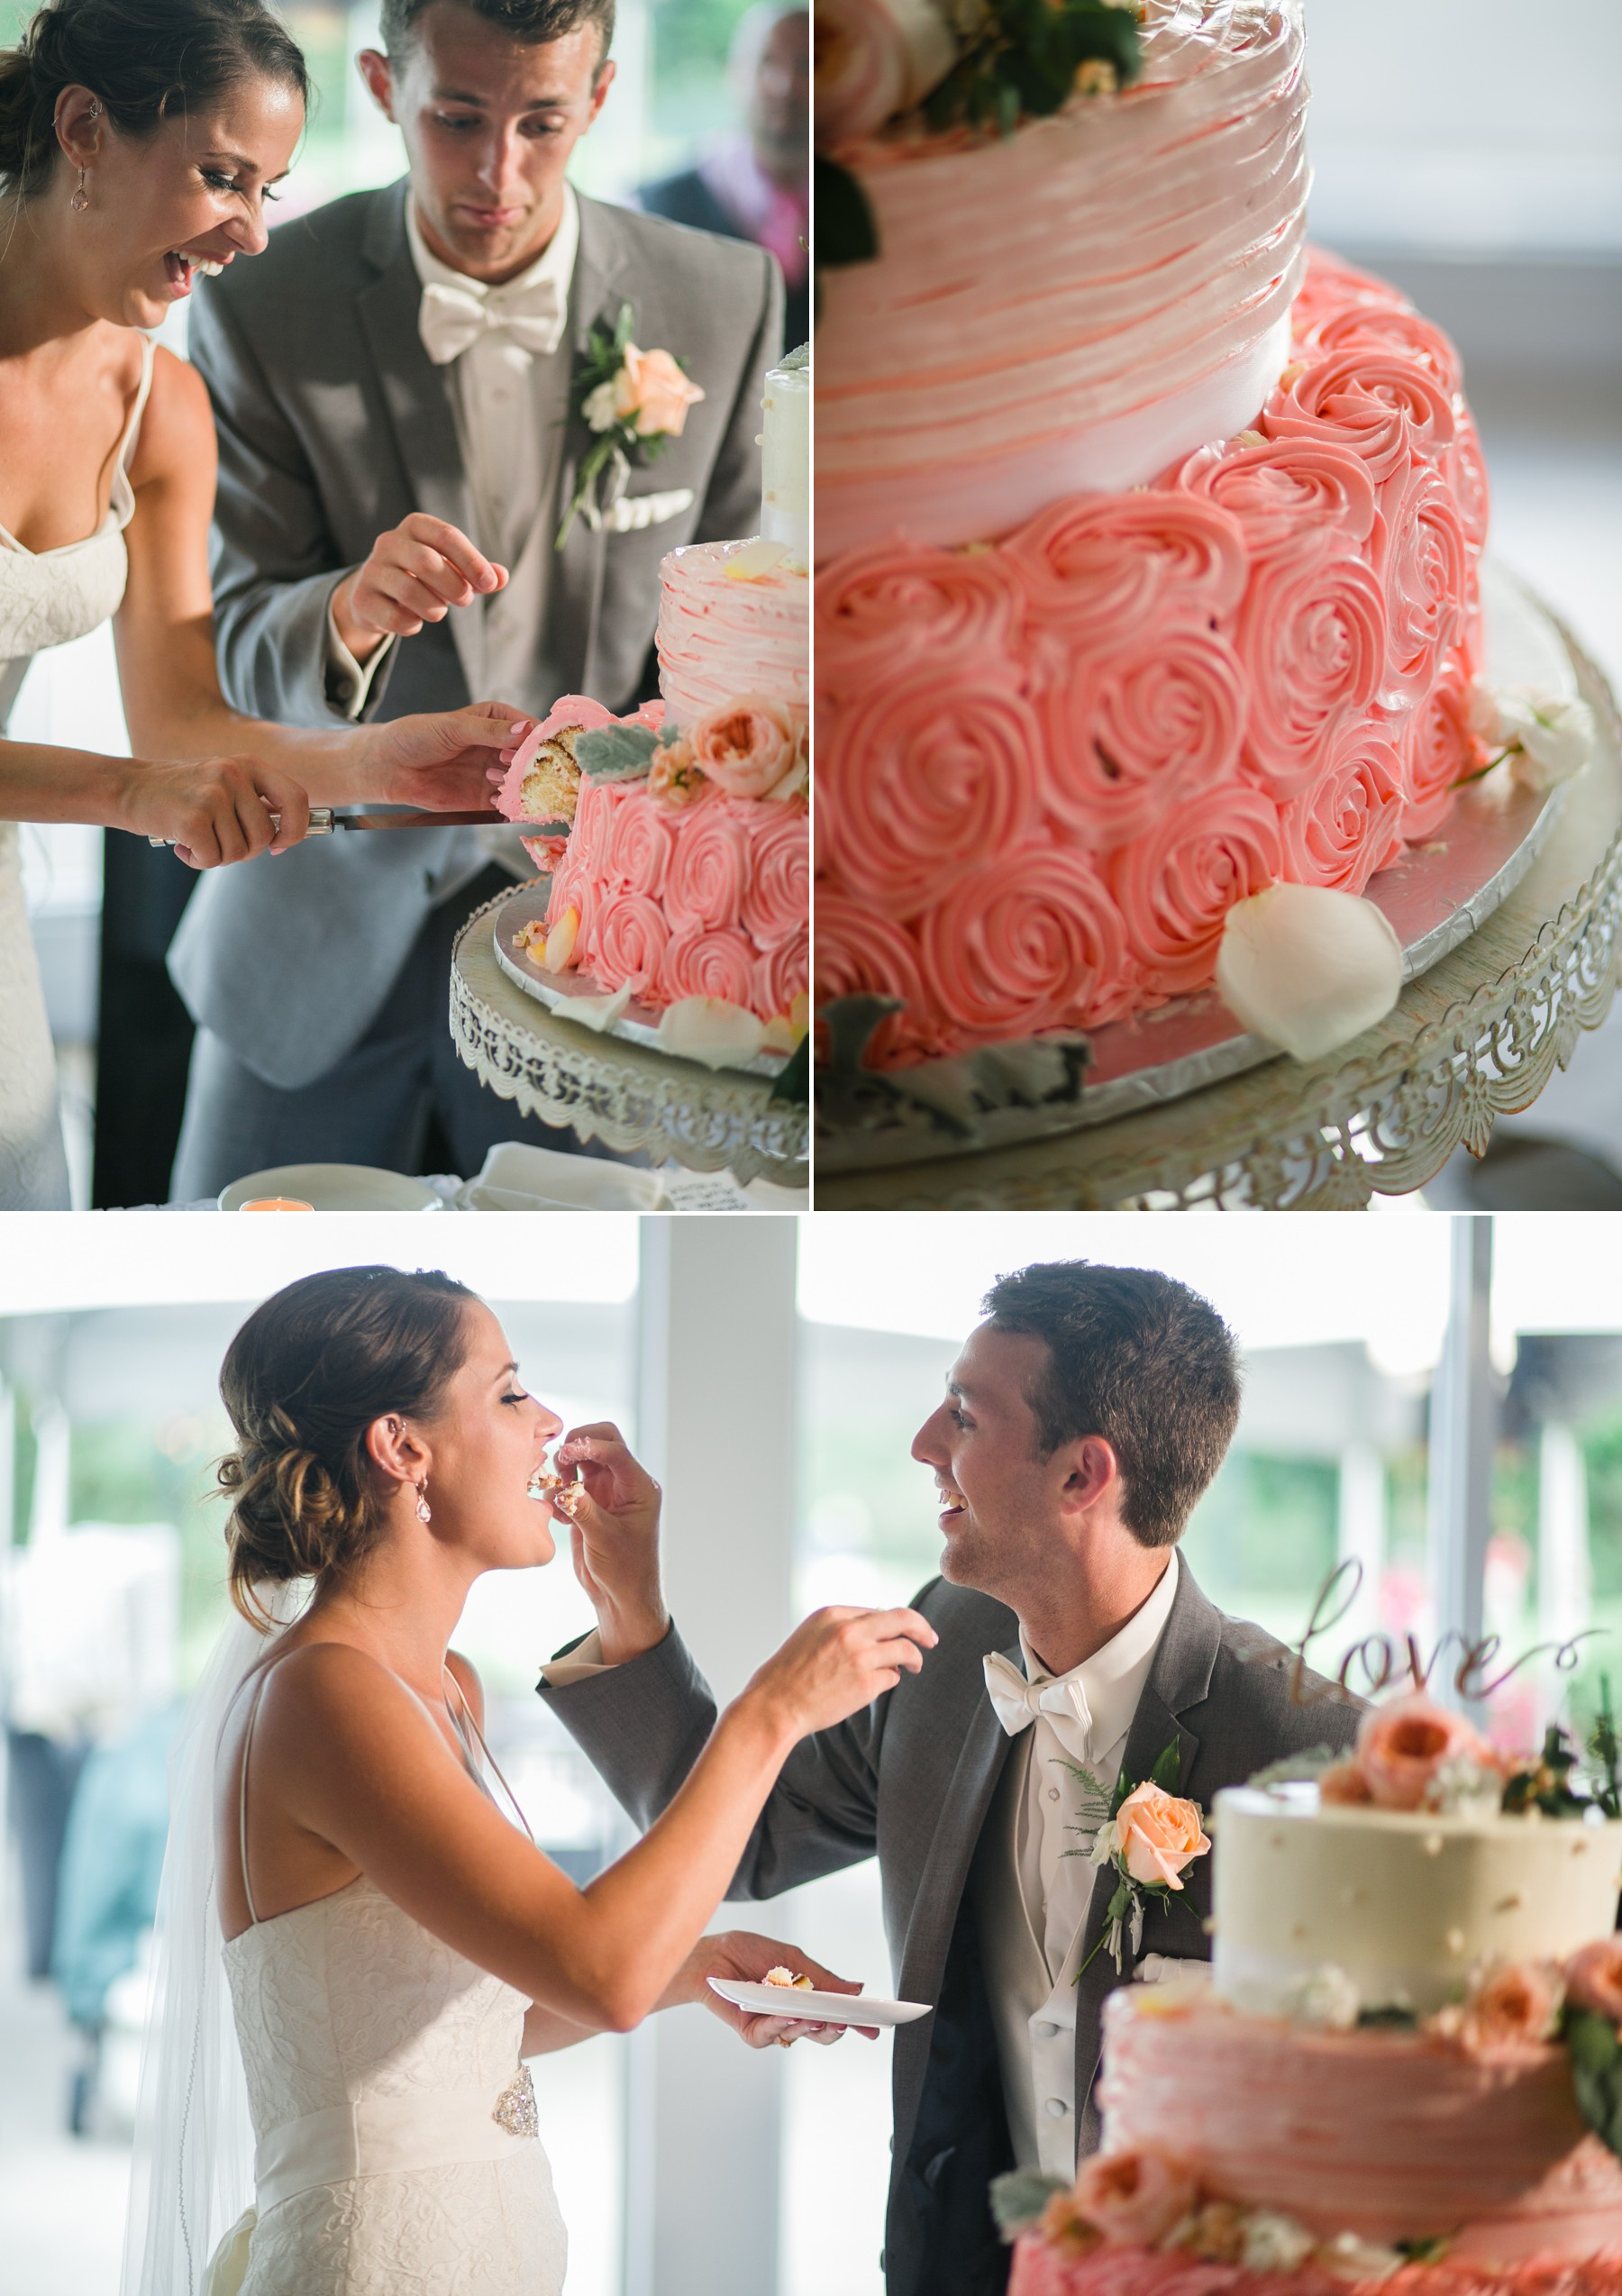 Highland-meadows-wedding-photos 20.jpg